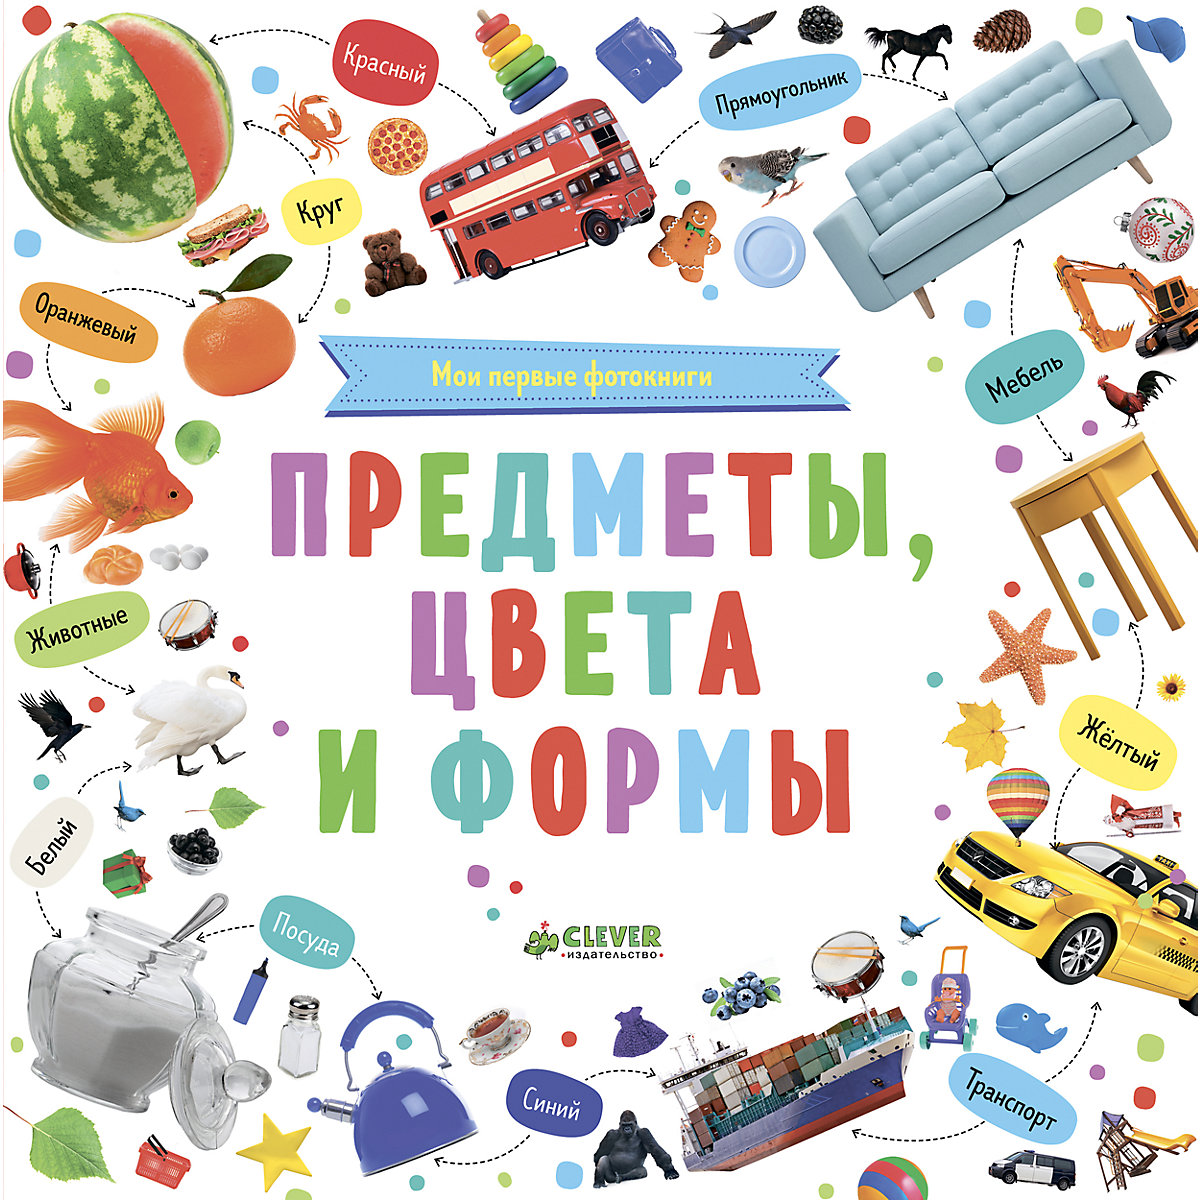 Books CLEVER 7675417 Children Education Encyclopedia Alphabet Dictionary Book For Baby MTpromo